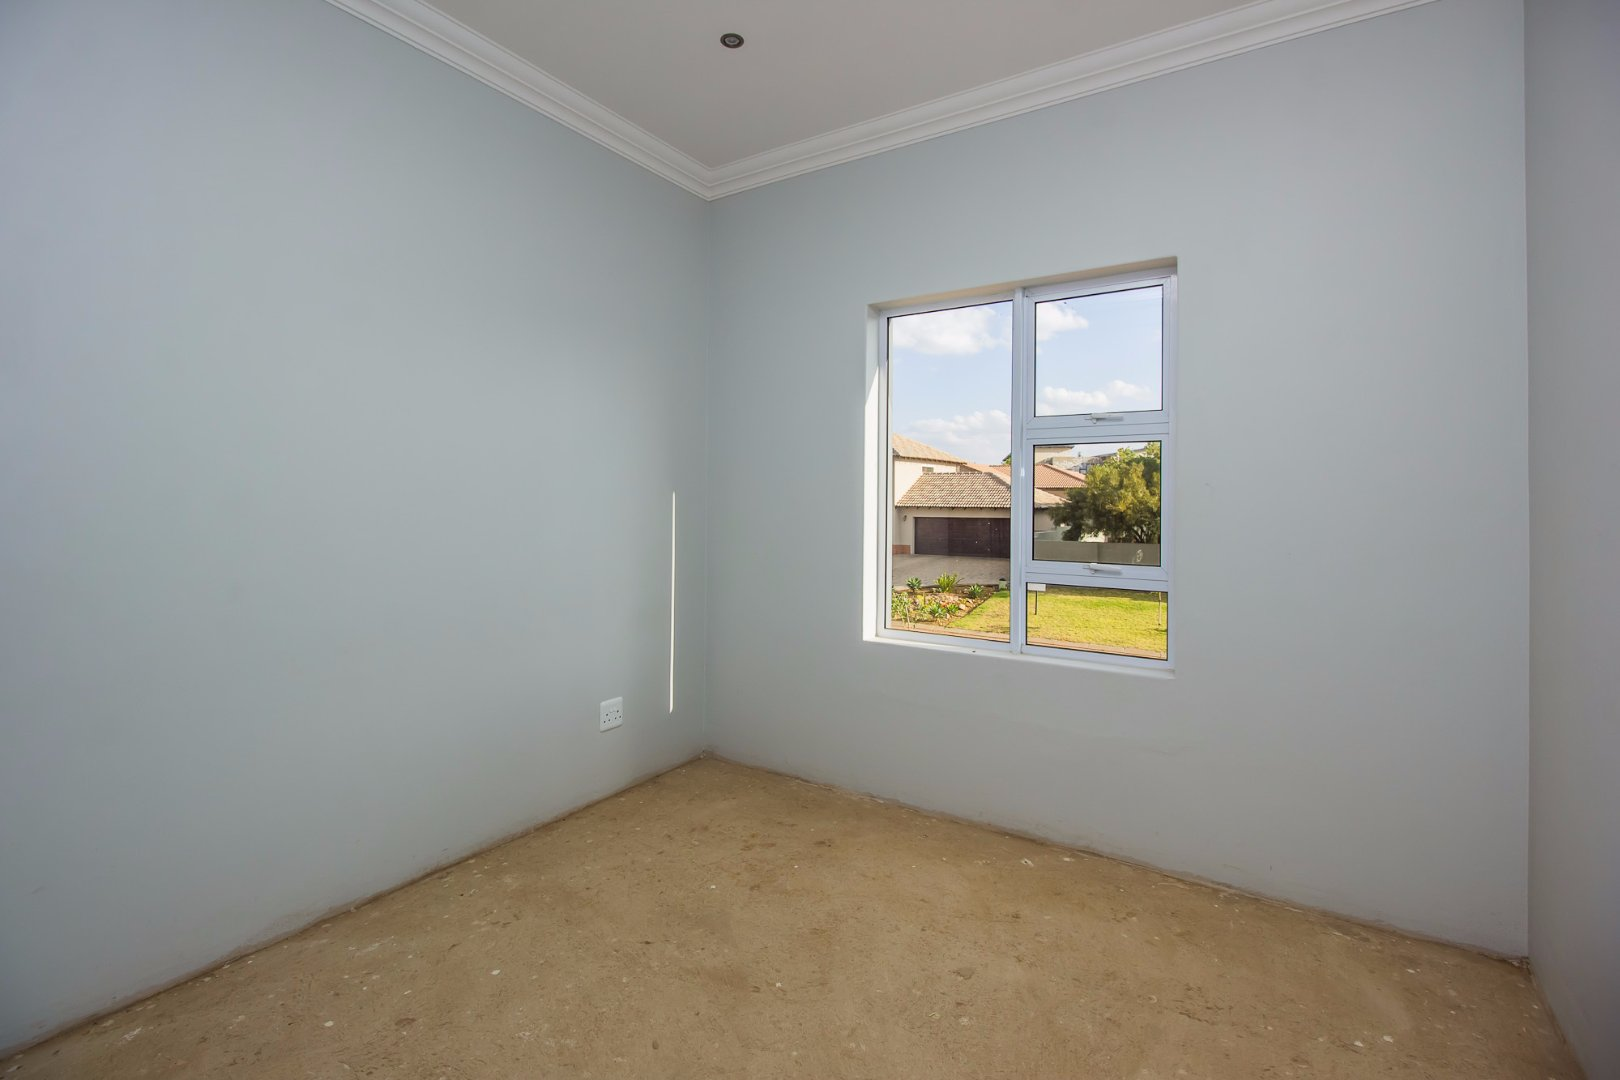 Hazeldean property for sale. Ref No: 13540485. Picture no 20